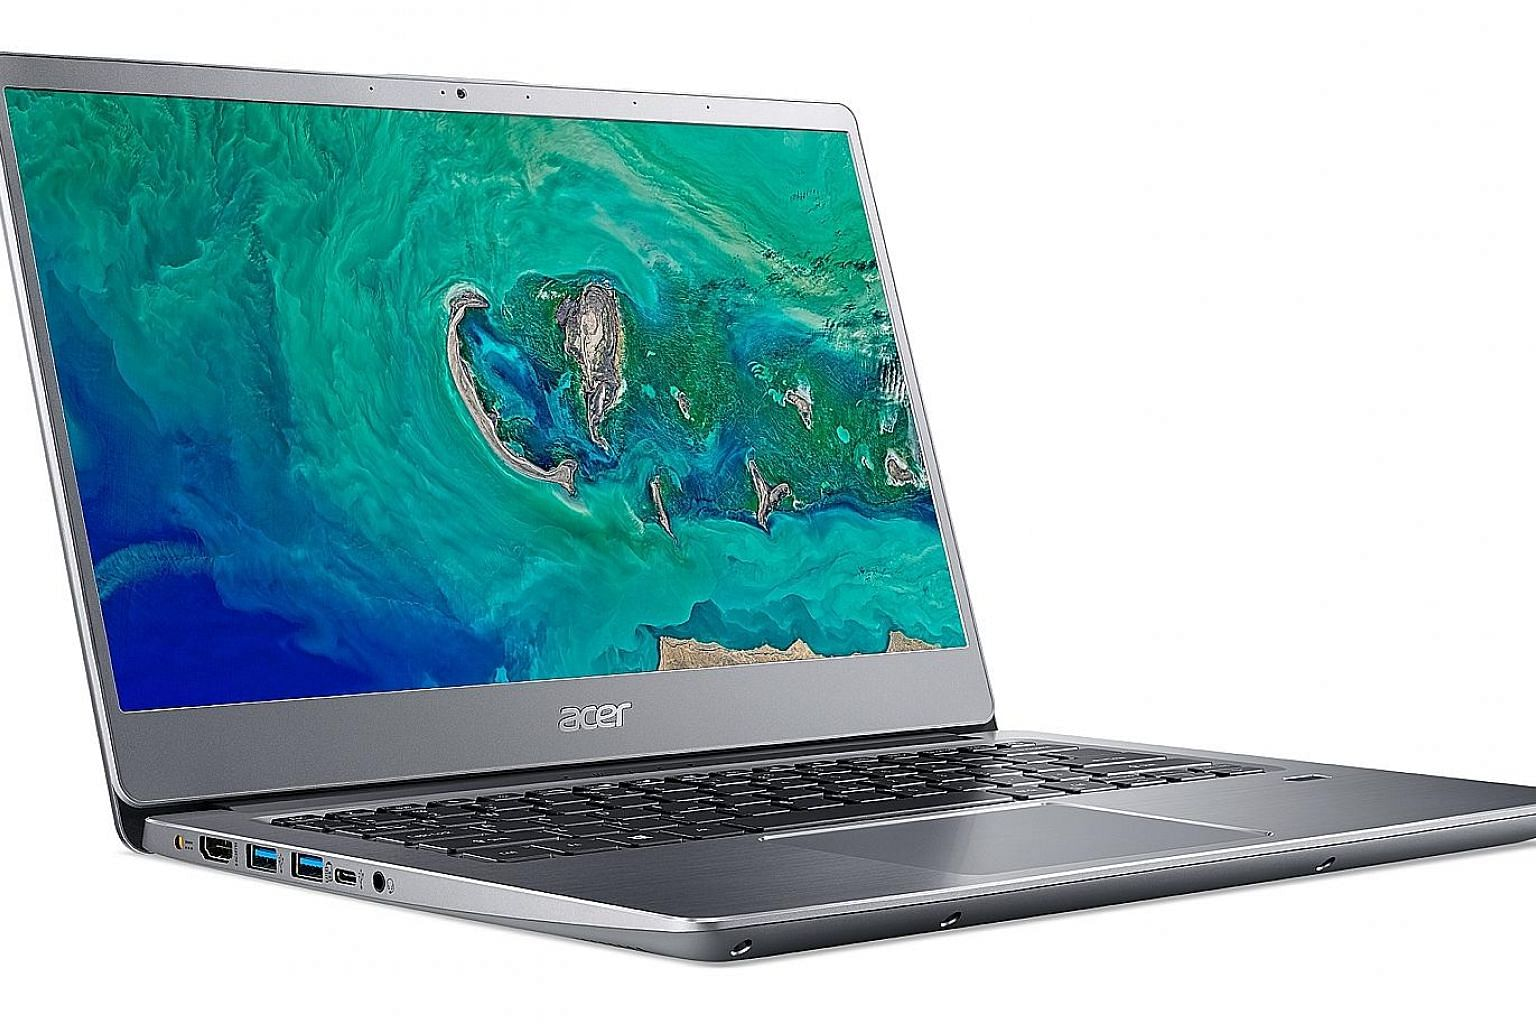 The Acer Swift 3 comes with features such as a fingerprint reader, full-HD IPS display, a backlit keyboard and a USB Type-C port.